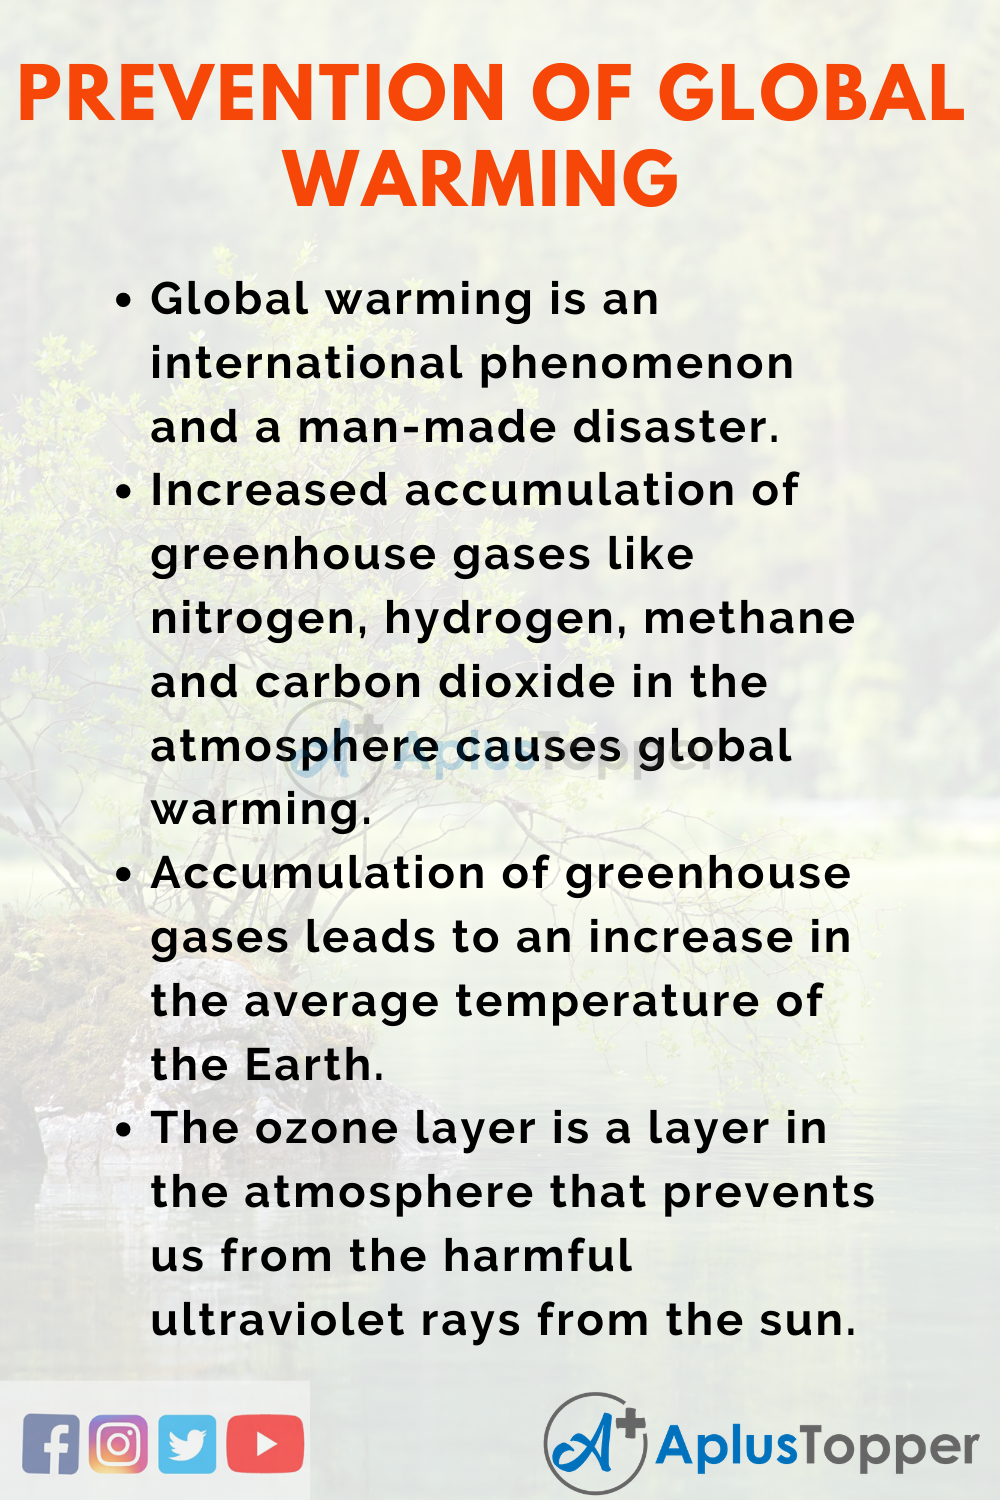 Essay on Prevention of Global Warming